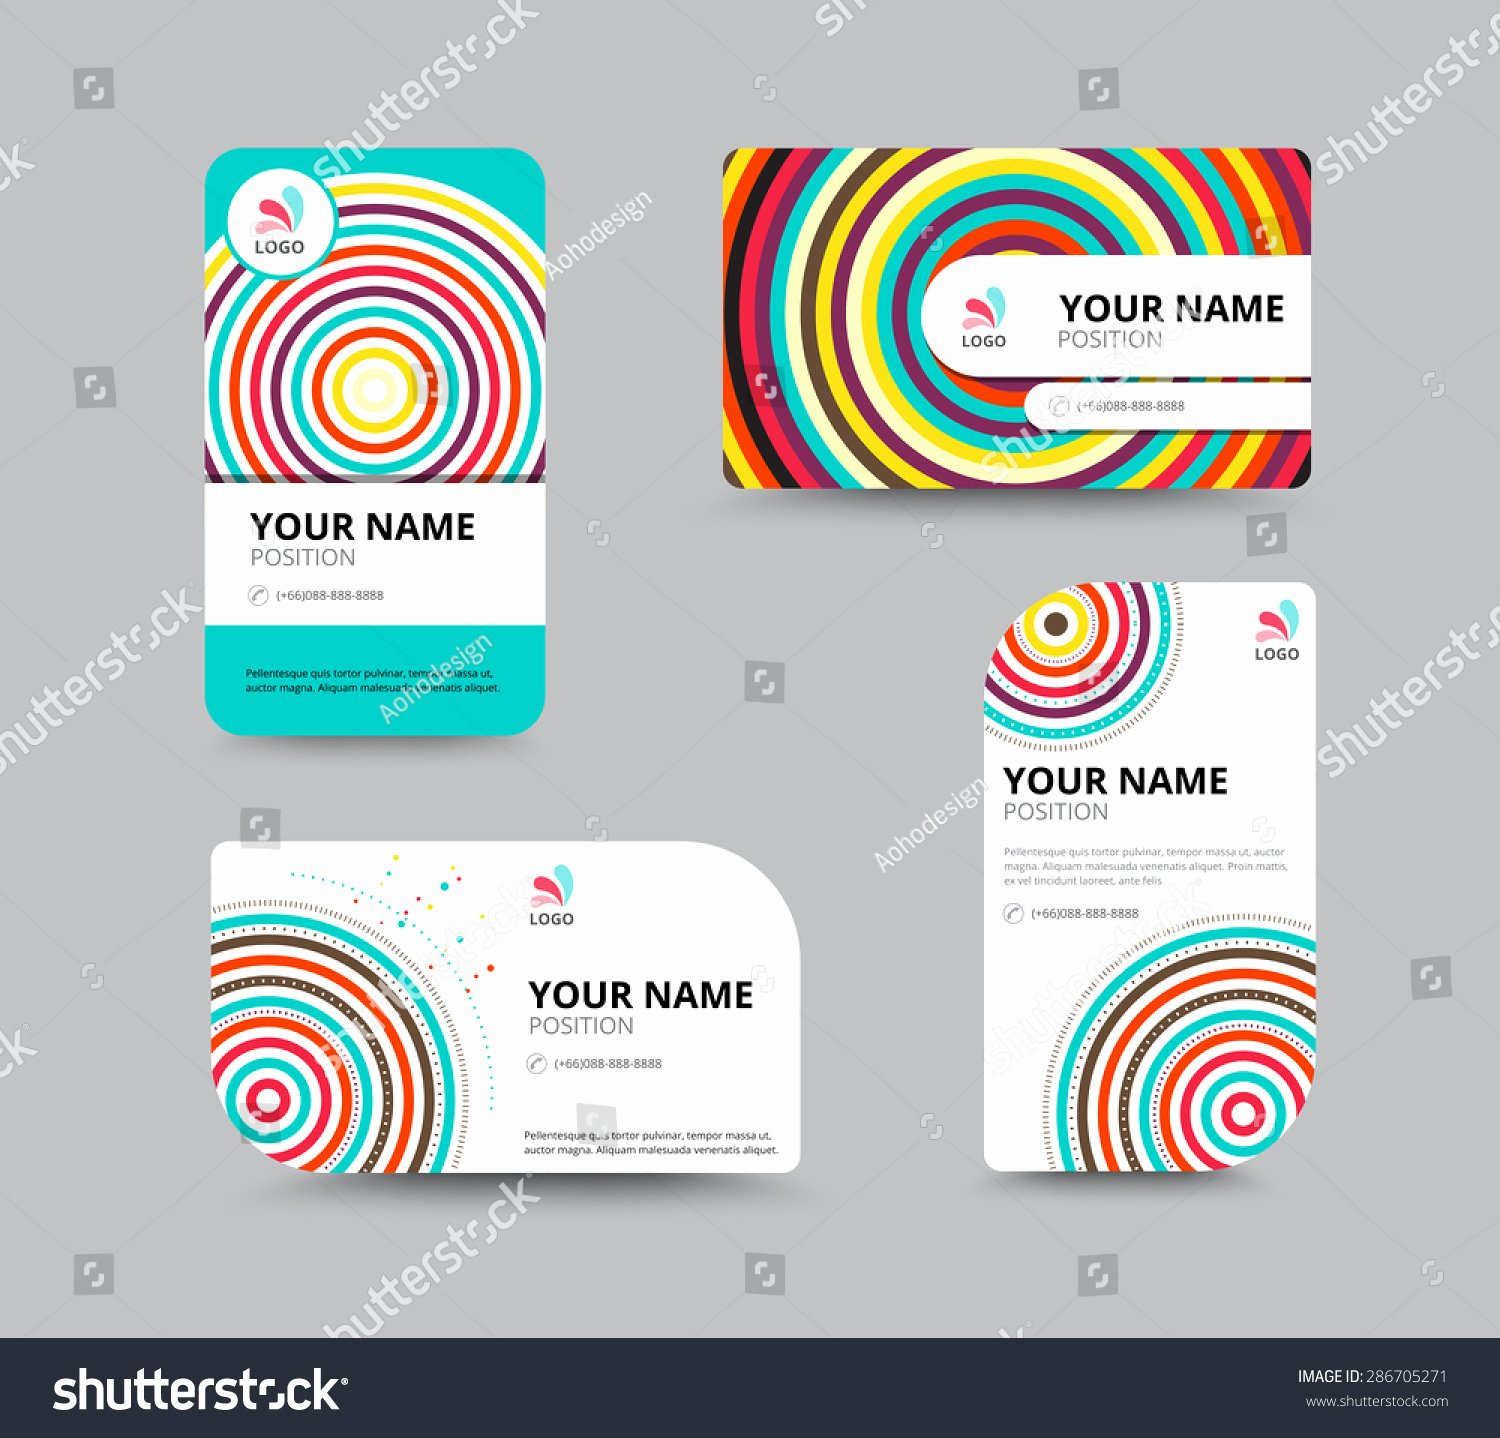 Circle Business Card Template Luxury Business Card Design Template Circle Concept Business